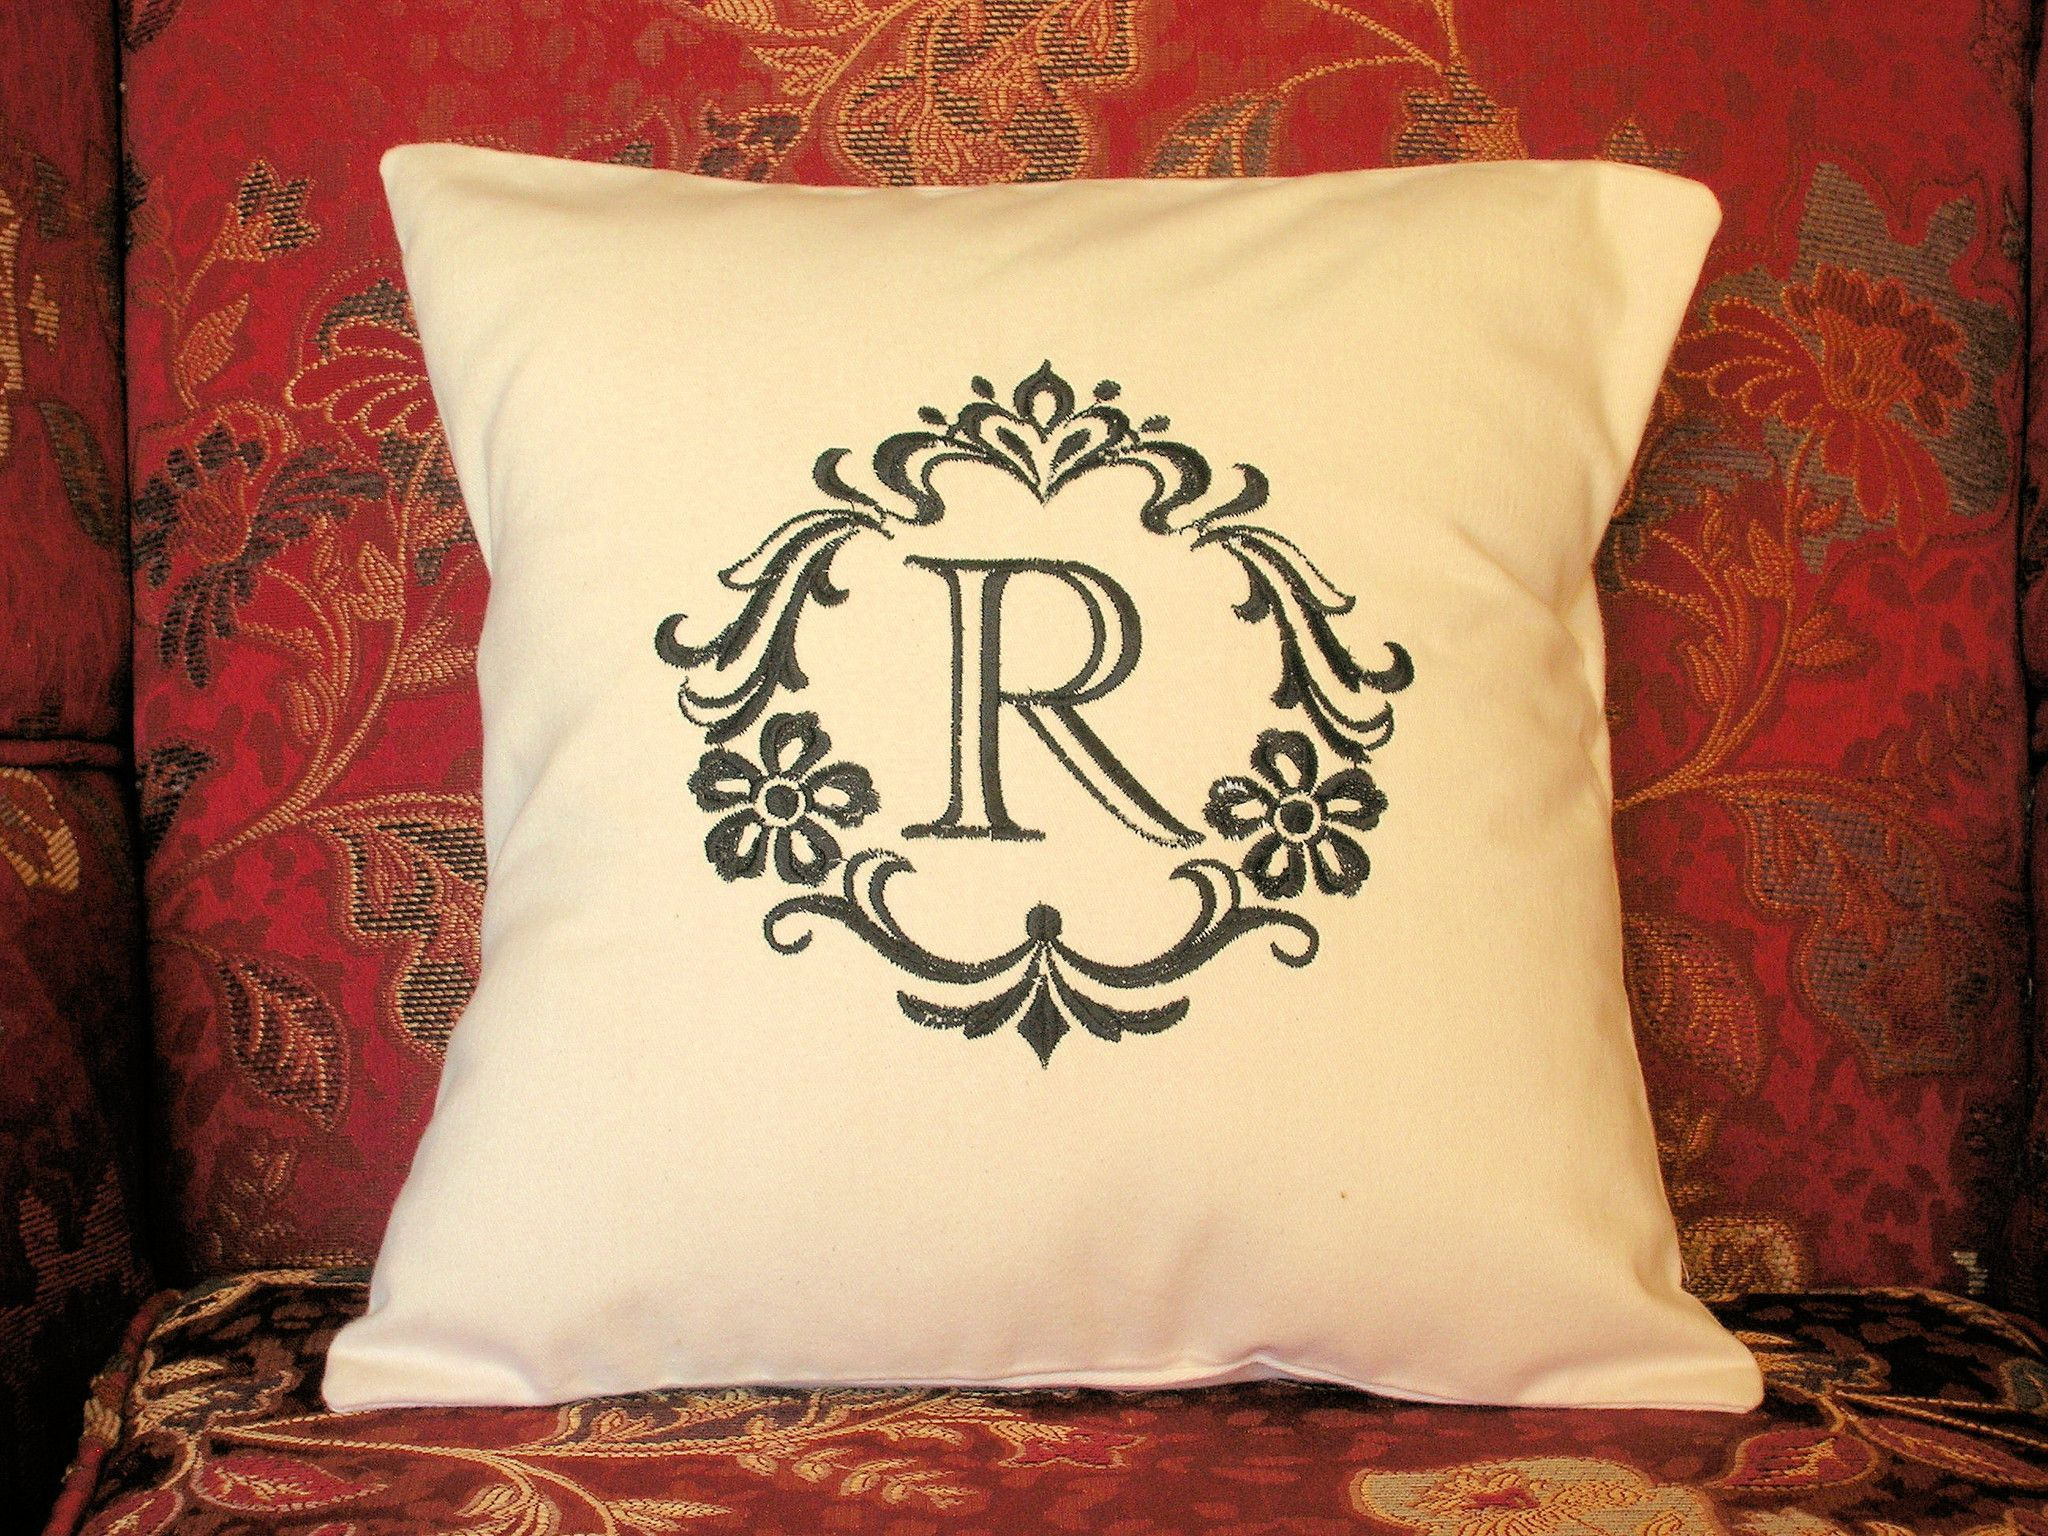 Pillow Cover, Damask, Cotton Pillow Cover, Pillow Cover, Monogram Throw Pillow Cover R